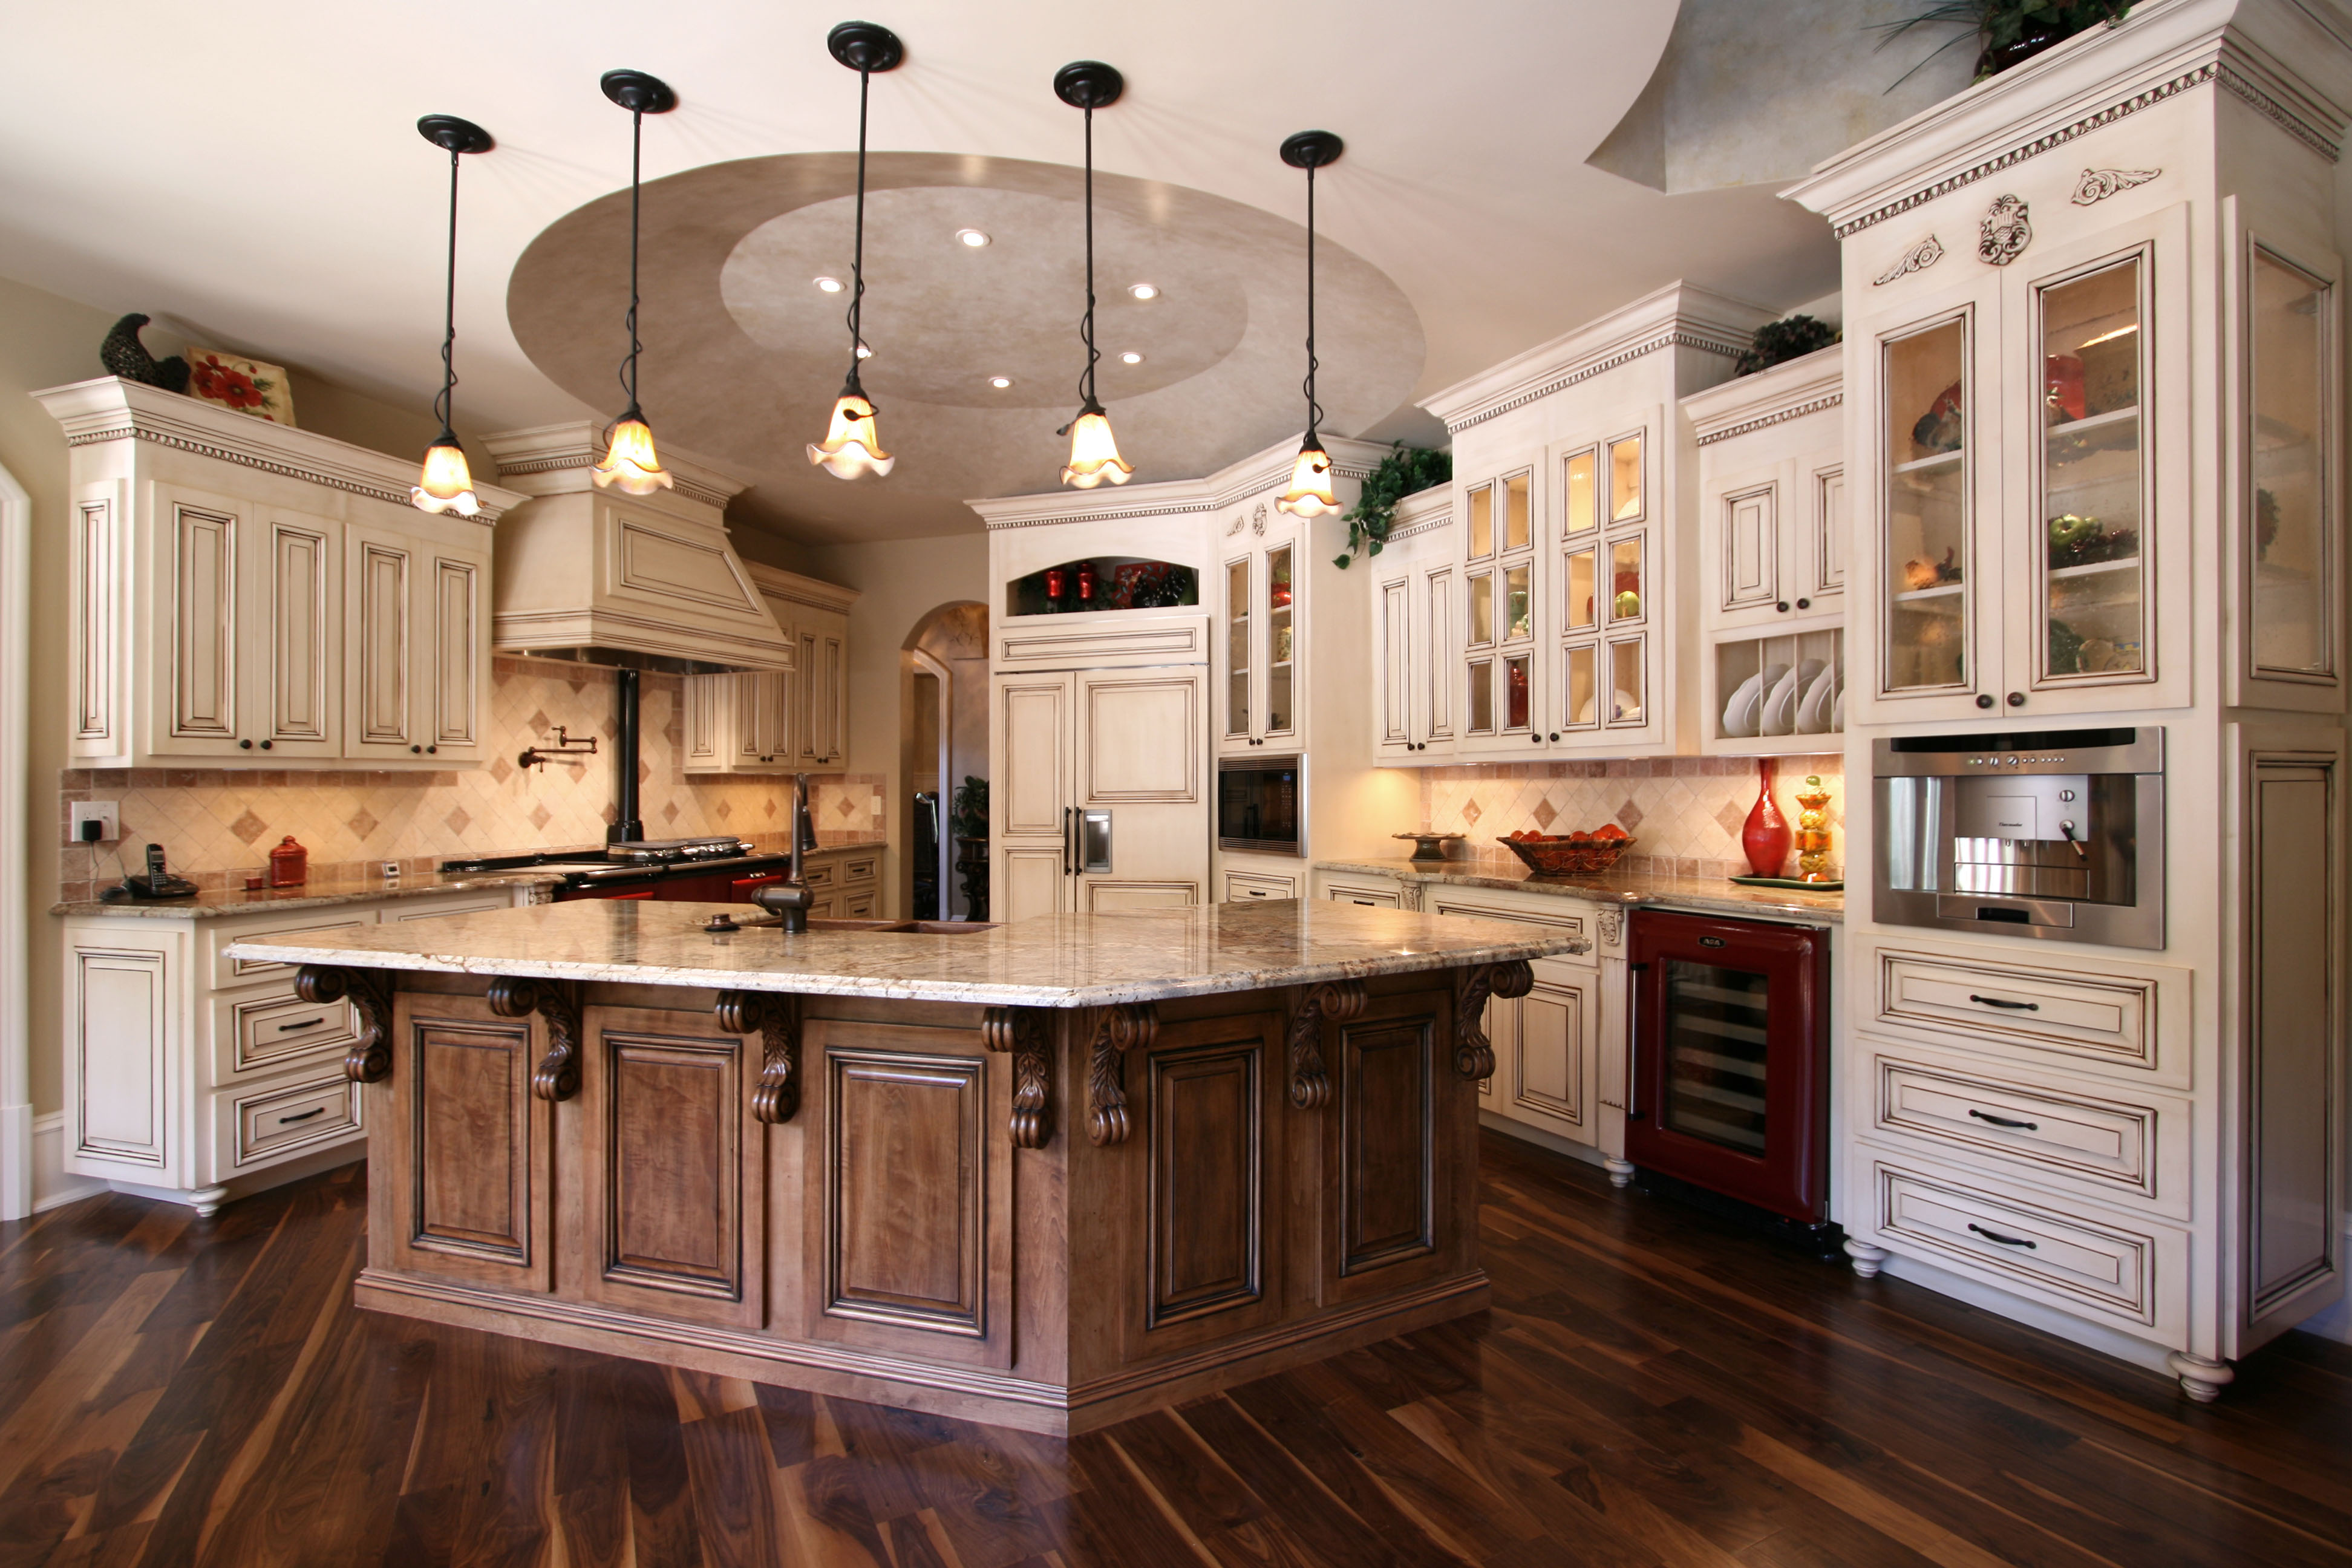 Tips for Tackling a Kitchen Remodel